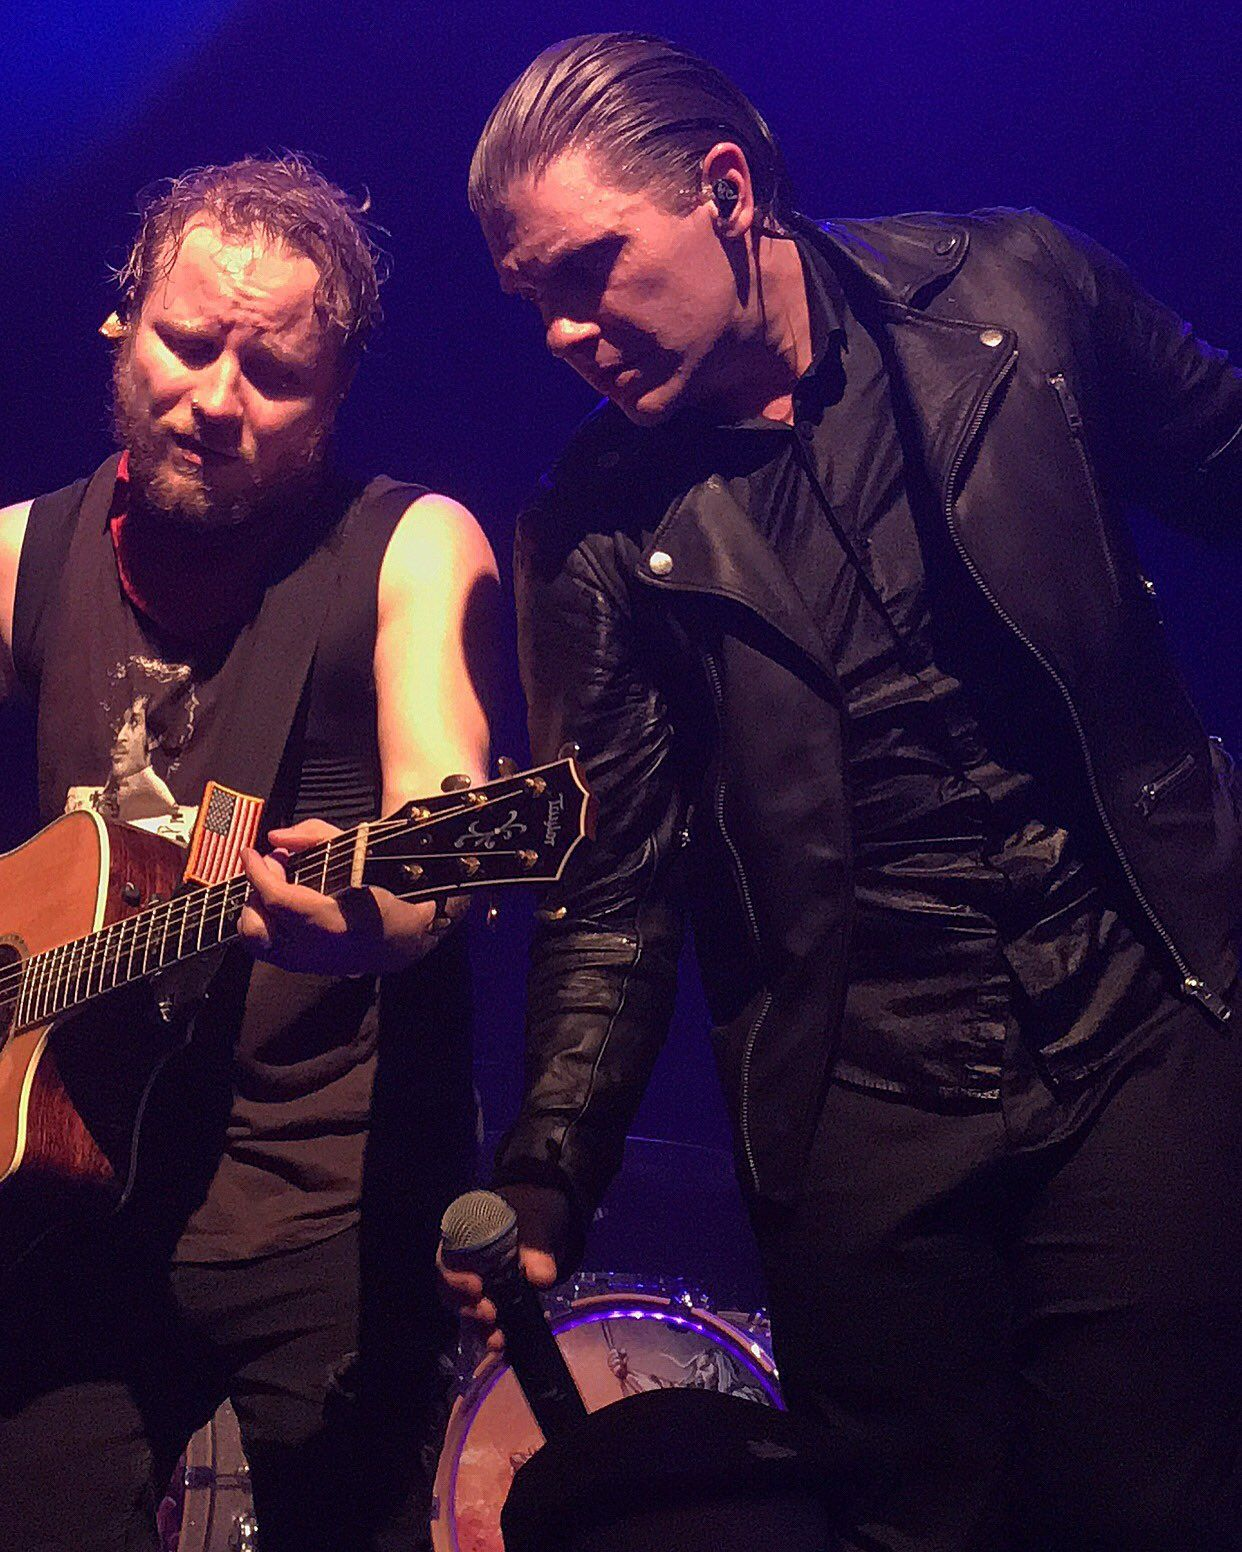 RT @ZMyersOfficial: So sweaty RT @BMWChicka: One of my favorite shots from last night  @ZMyersOfficial @TheBrentSmith https://t.co/uQ05XgE82J